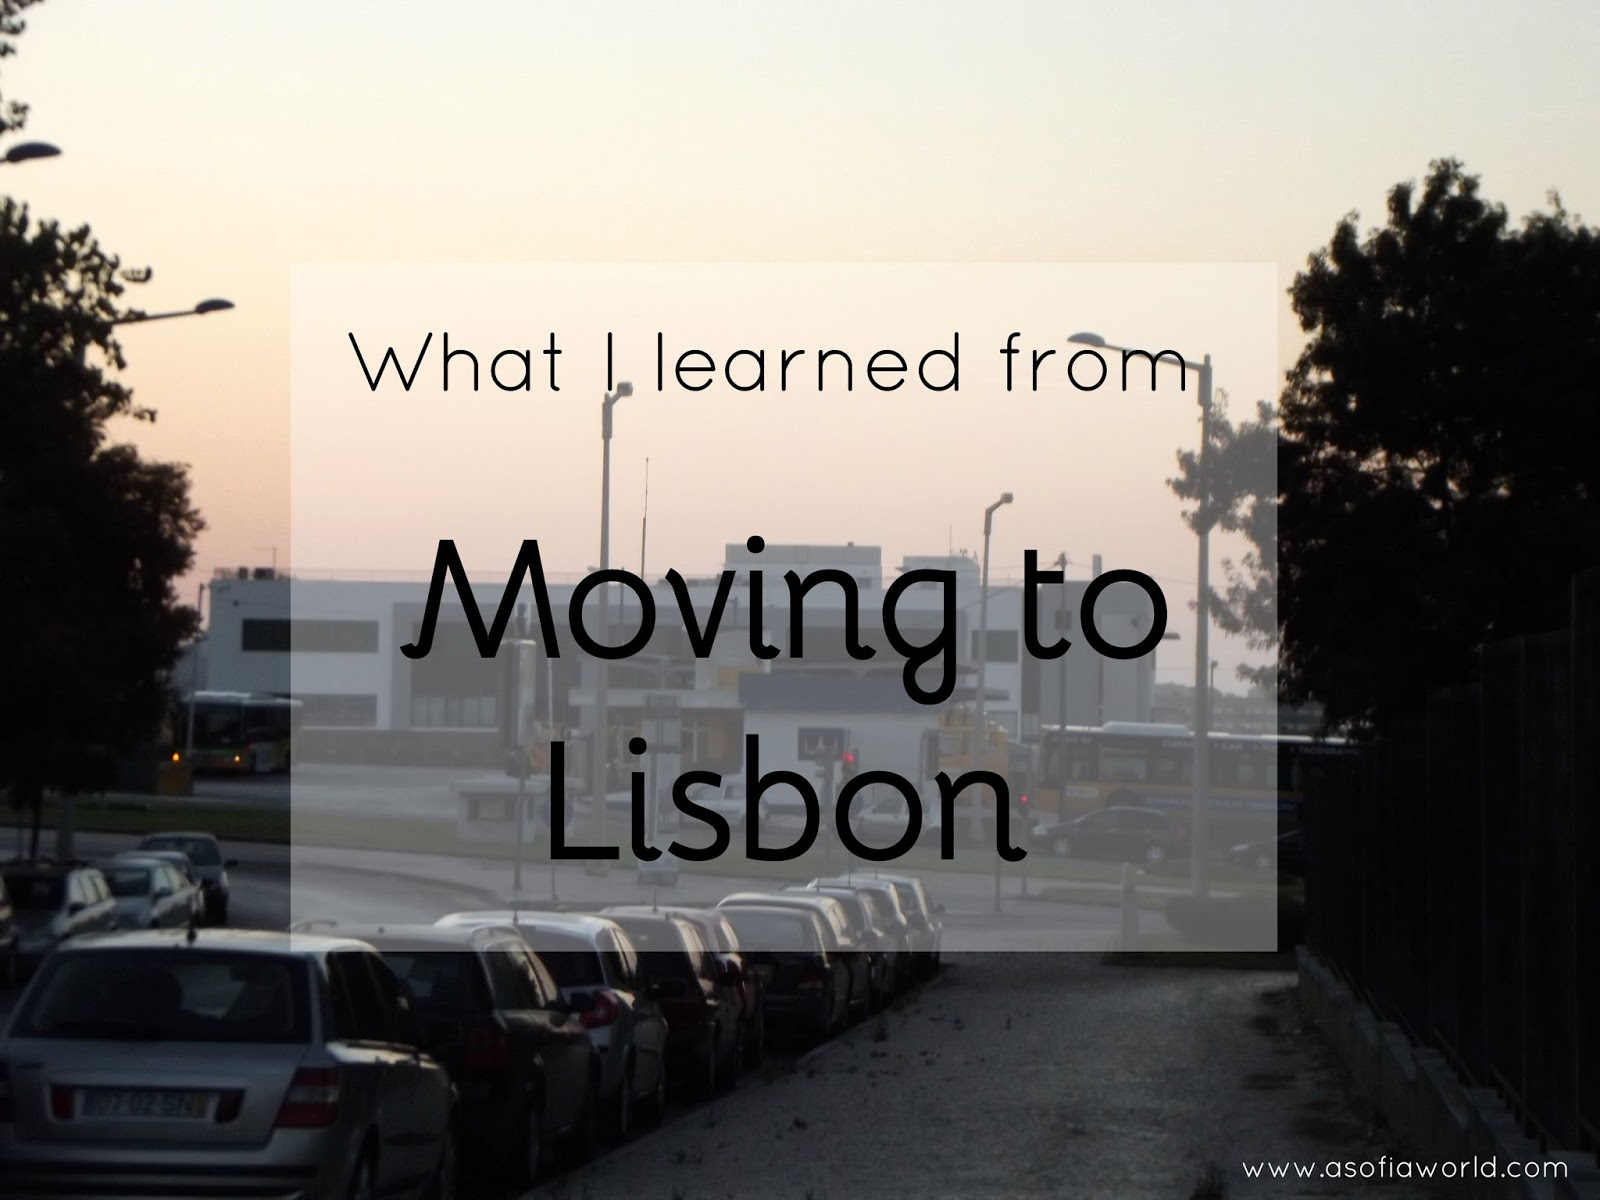 Moving to another city can be hard. We get to know other places and other sides of ourselves. From moving to Lisbon that's what I learned.